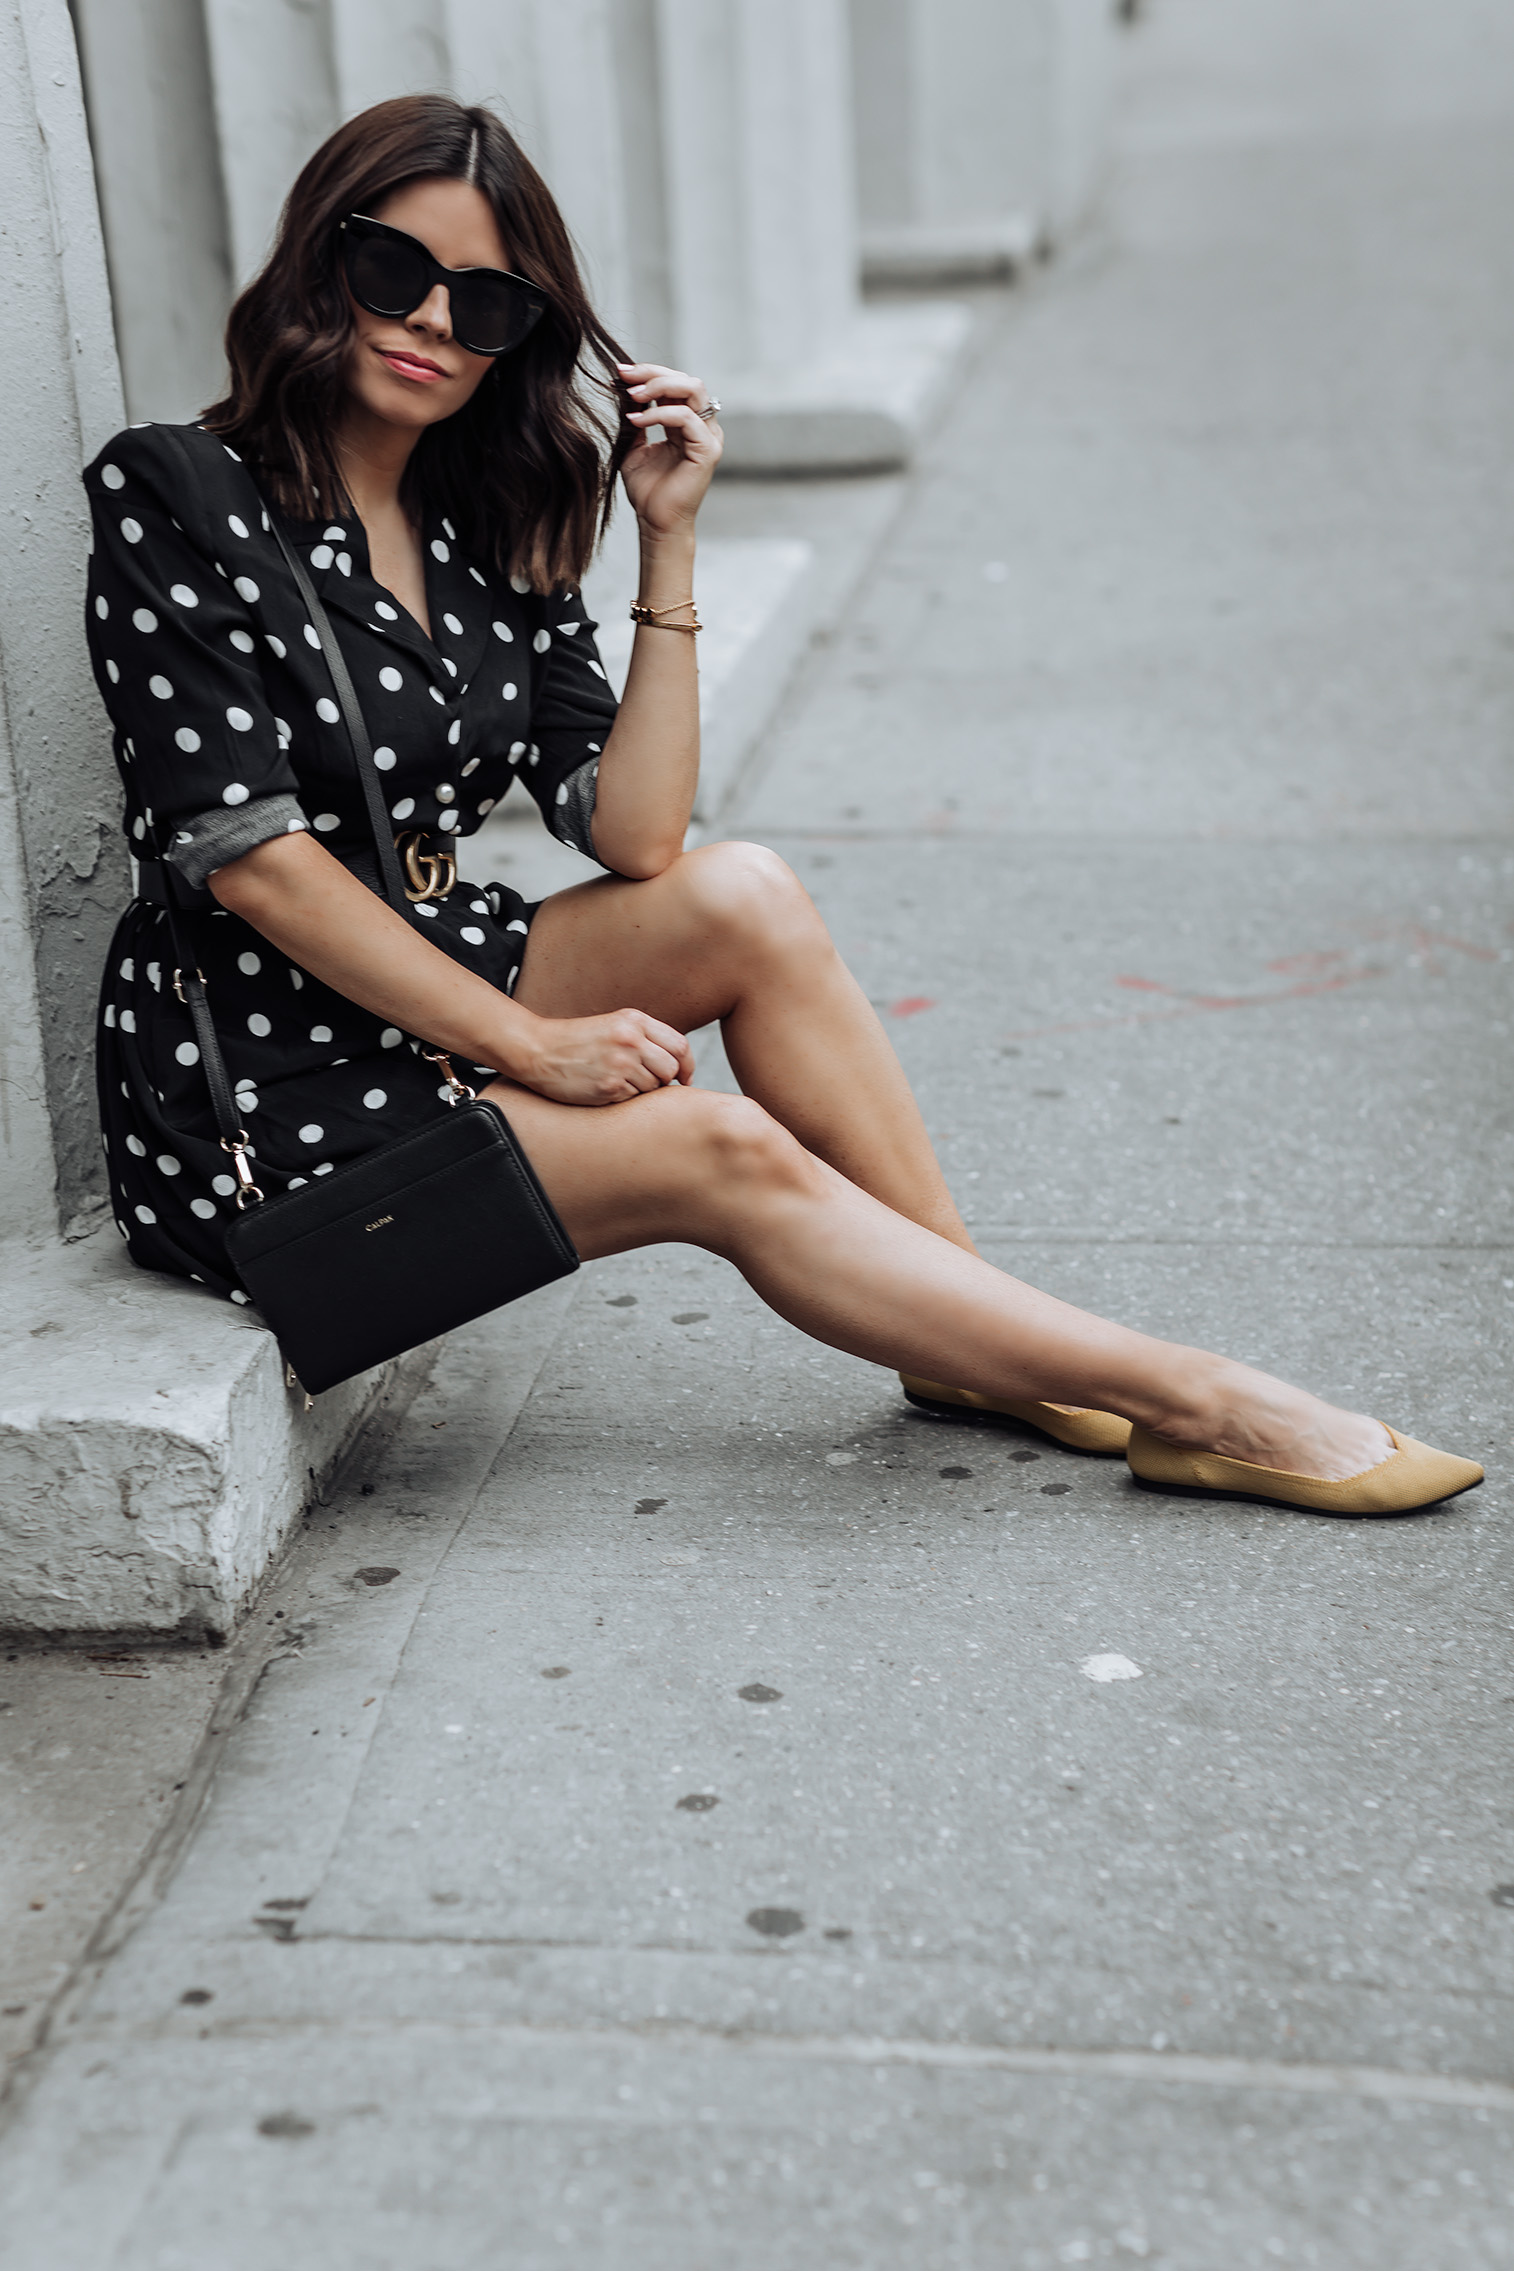 Rothy's footwear Tiffany Jais fashion and lifestyle blogger of Flaunt and Center | NYC fashion blogger | Streetstyle blog